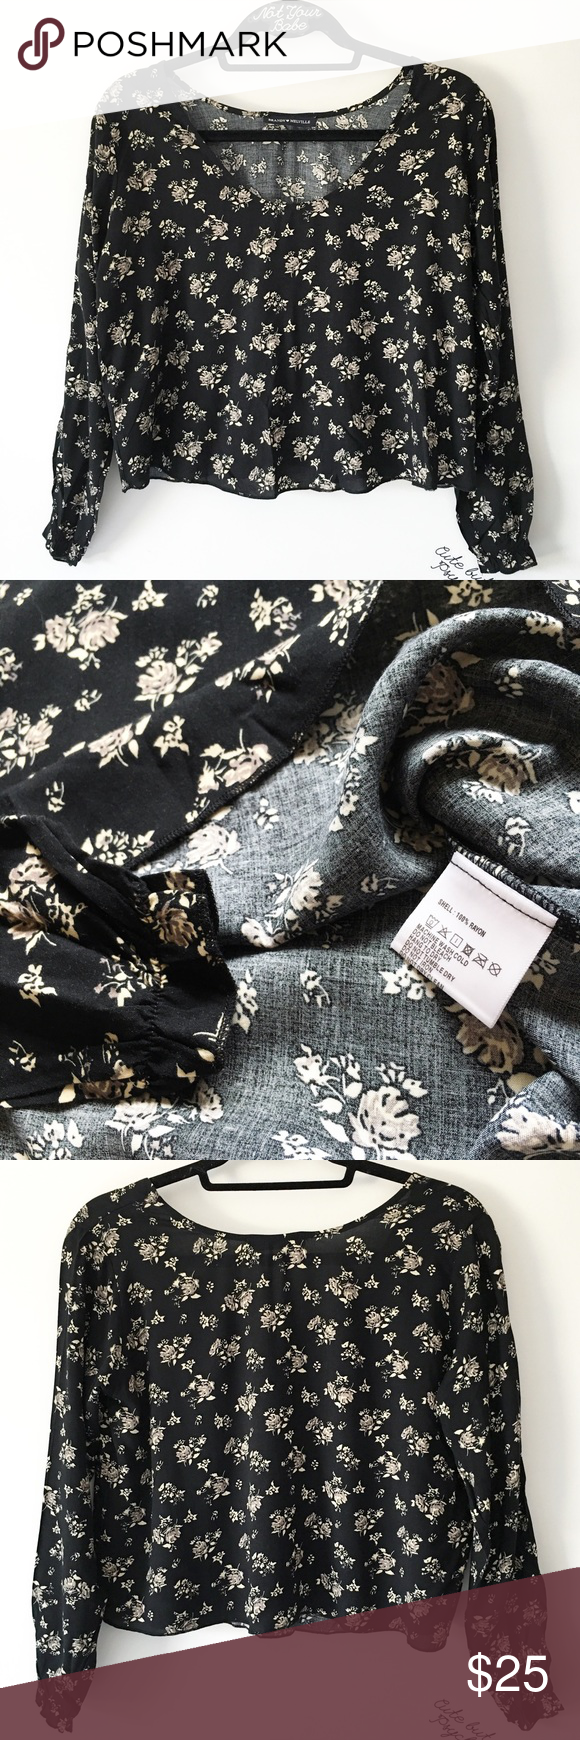 """NWOT black rose print blouse top 19"""" in length, 100% rayon  $20 + $3 shipping through 🅿️🅿️  ❌ lowballers will be blocked 👋🏻 Brandy Melville Tops Tees - Long Sleeve"""